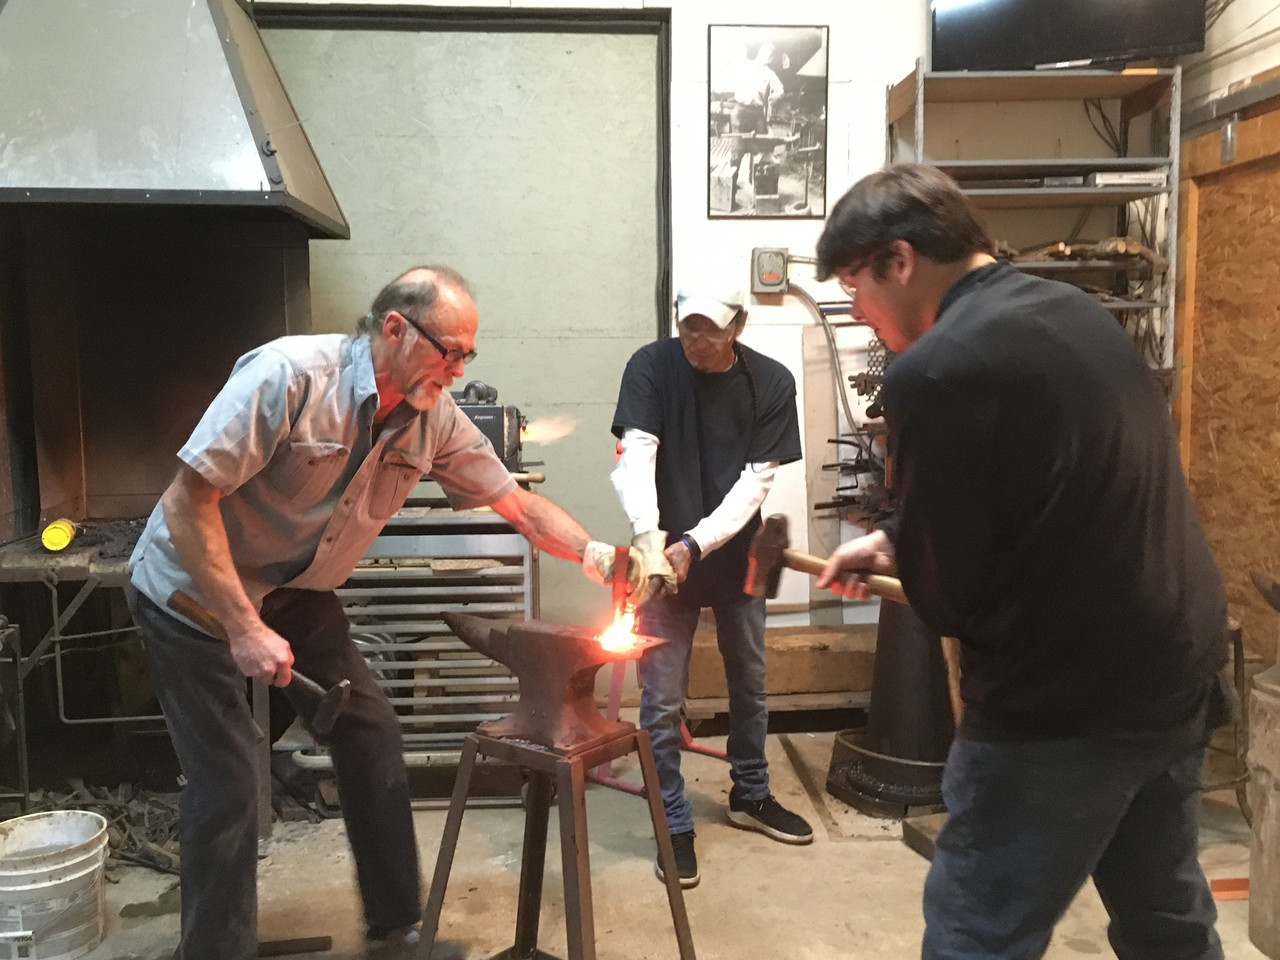 a group of three people working together to forge metal